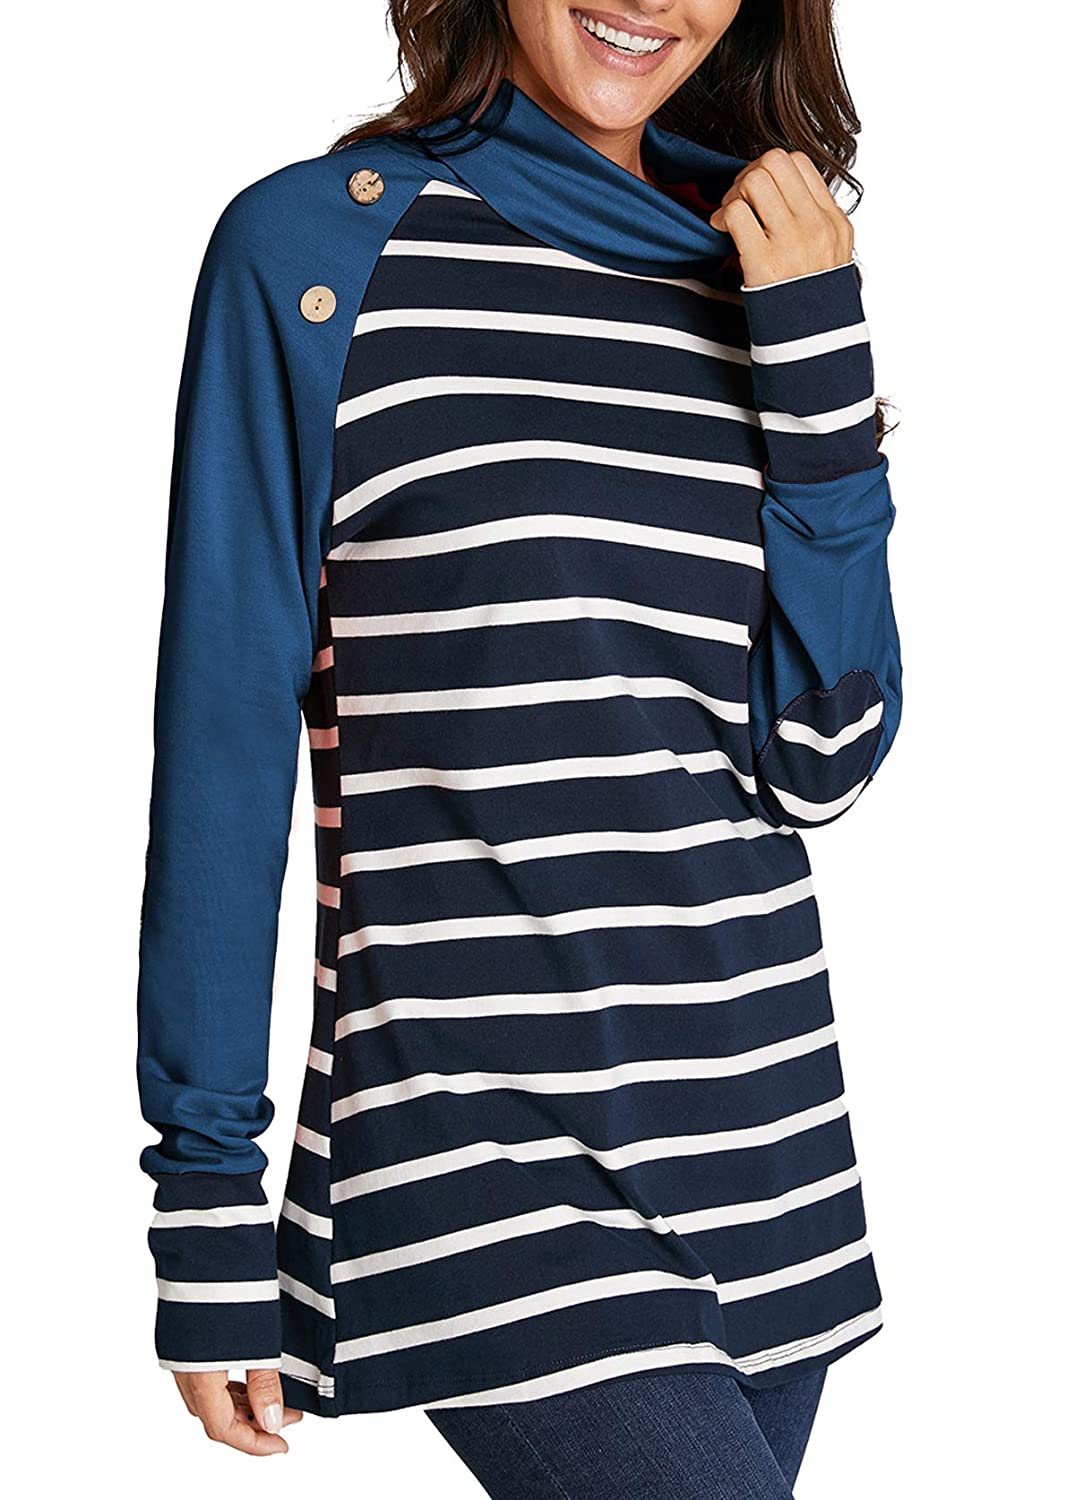 7f20a6b84eff3 Mystry Zone Womens Turtleneck Cowl Neck Tops Patchwork Shirts Oversized  Tunic Long Sleeve Pullover Blue S at Amazon Women s Clothing store